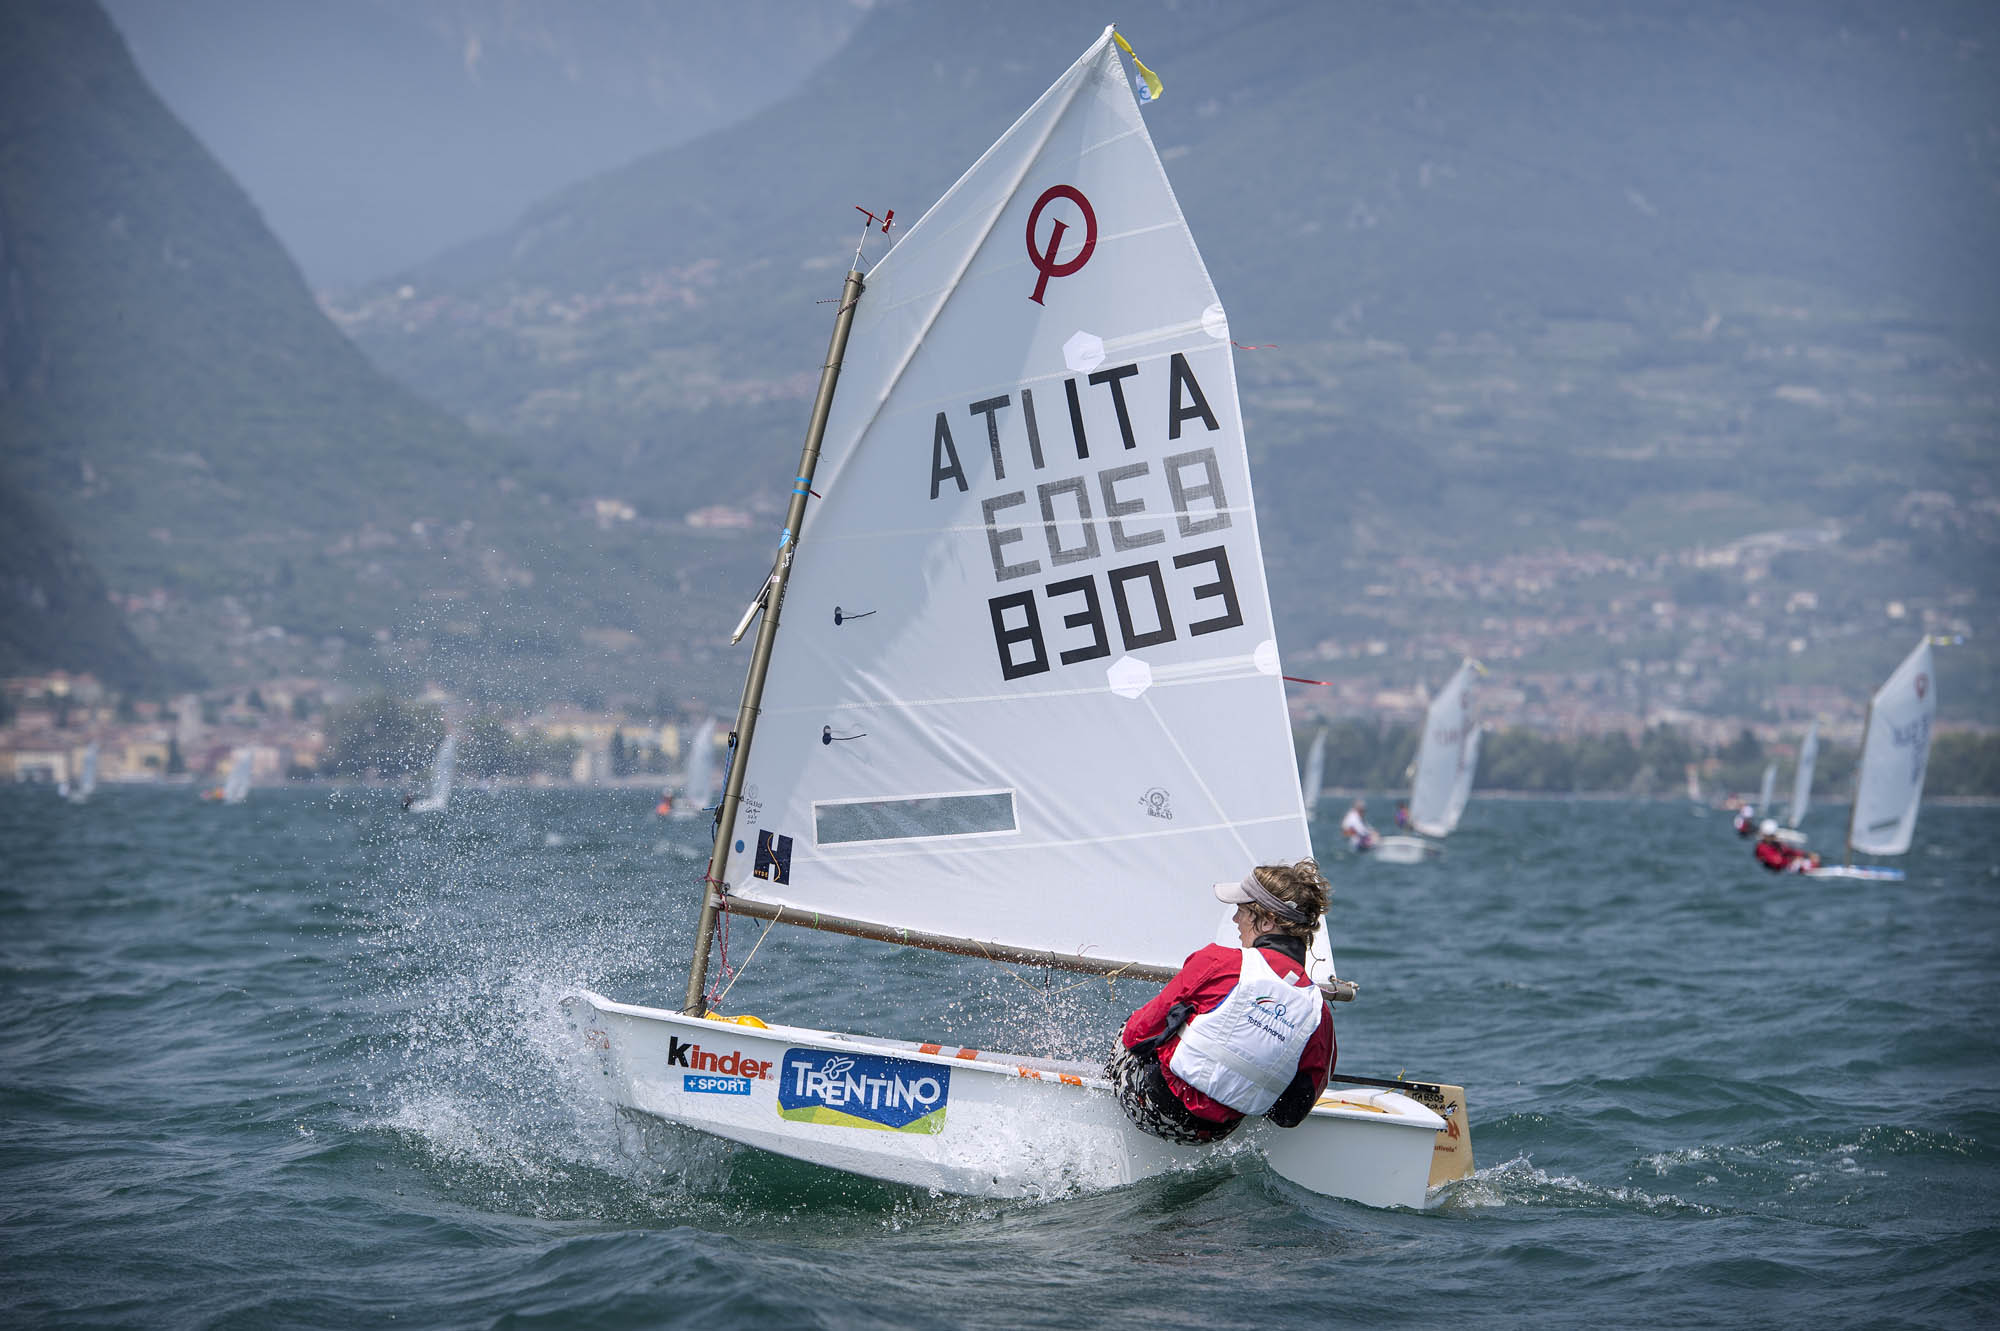 FVR 2013-07-17 MONDIALE OPTIMIST